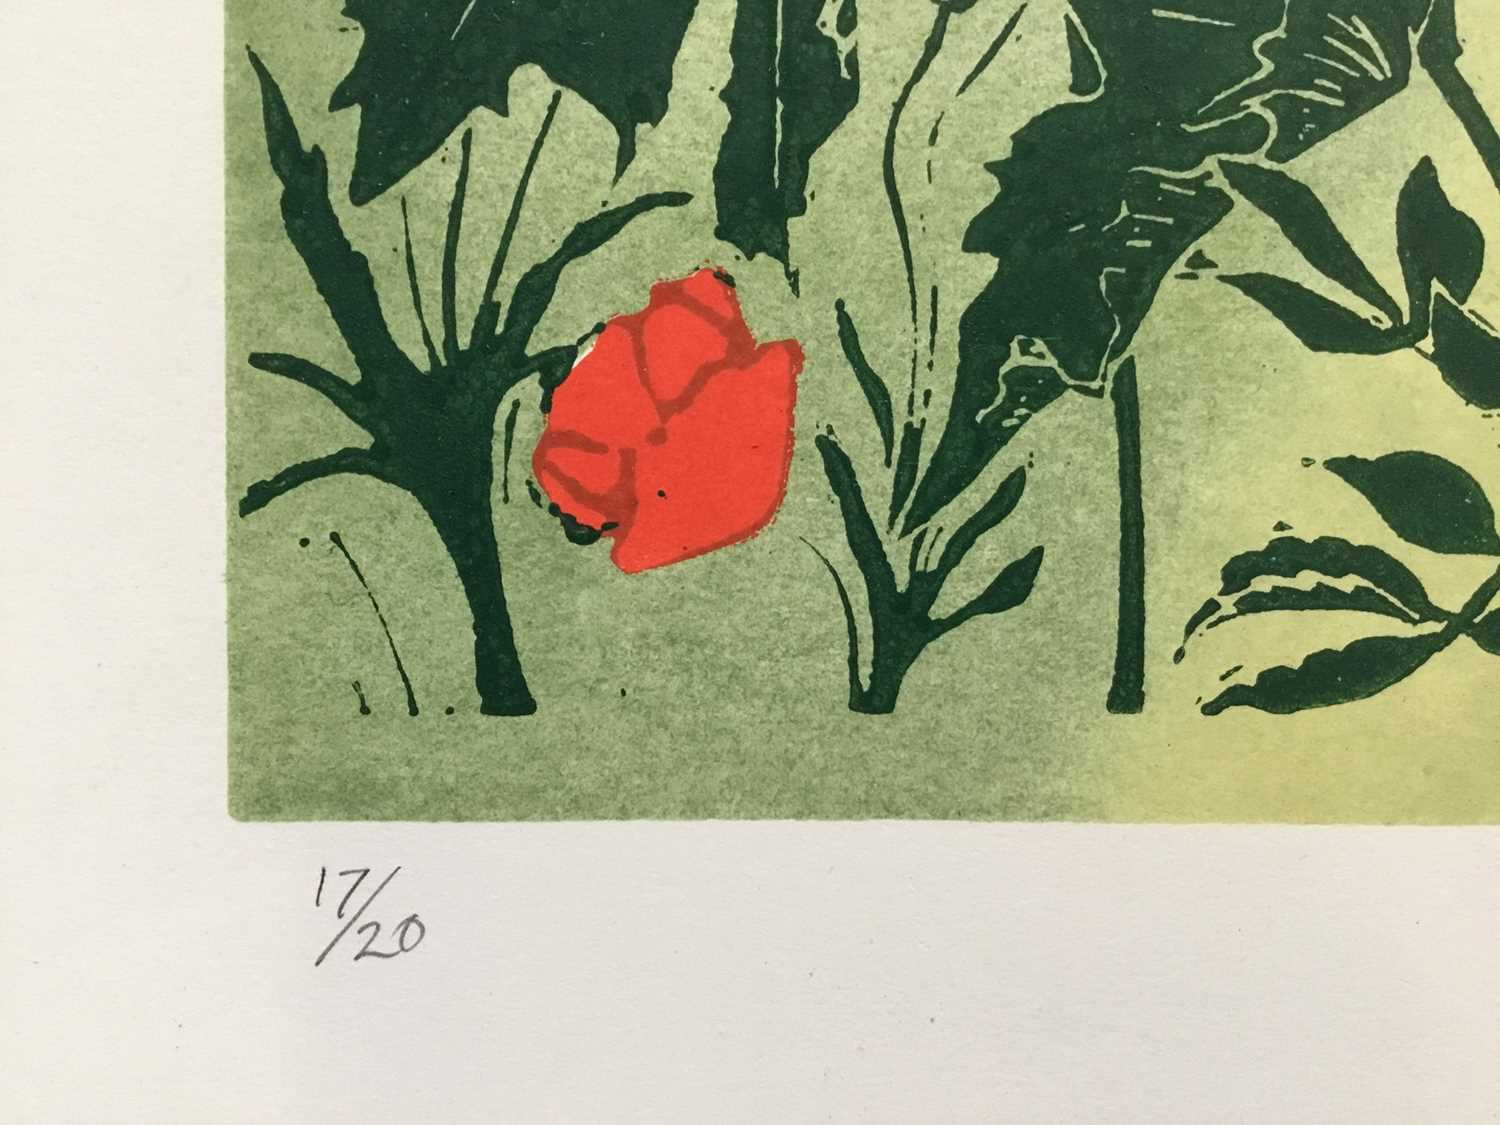 Penny Berry Paterson (1941-2021) colour woodcut print, Barnack Mill, signed titled and numbered 17/2 - Image 2 of 4